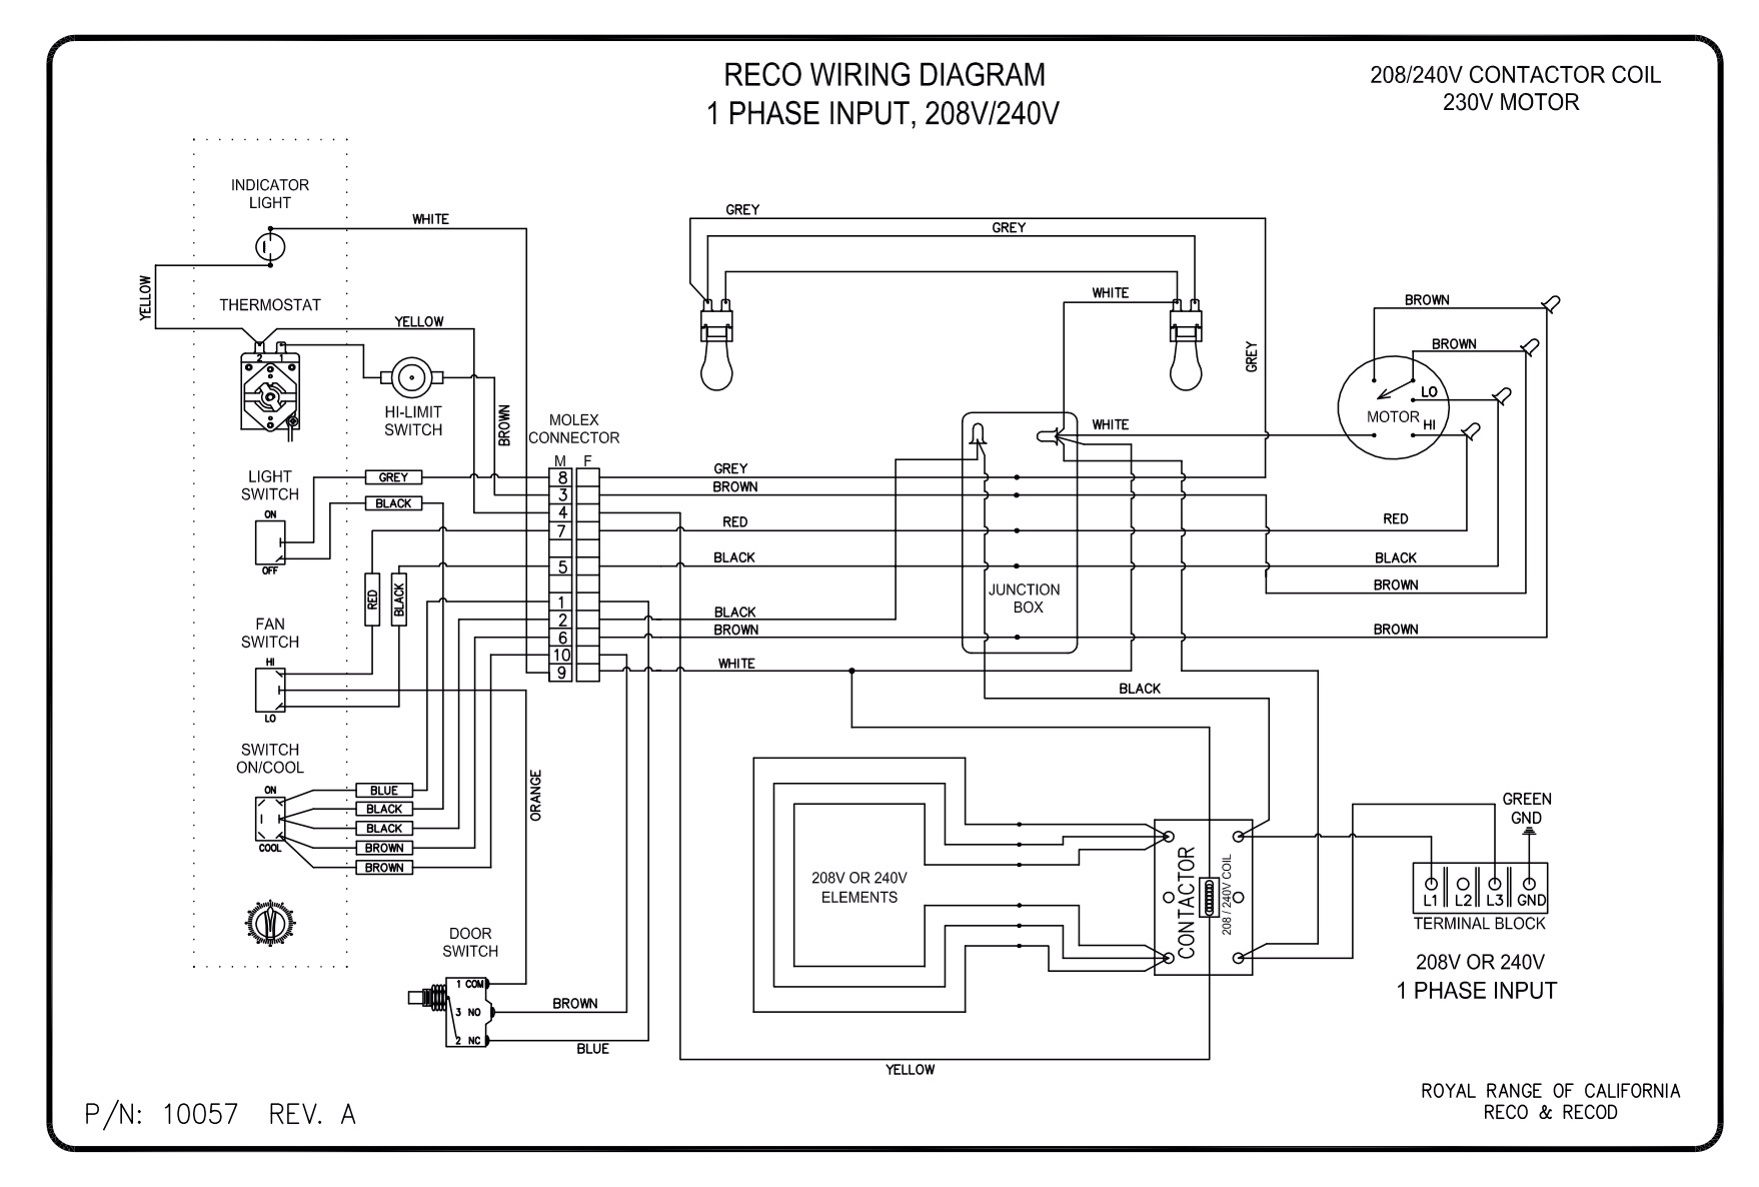 wiring diagrams royal range of california rh royalranges com waring convection oven wiring diagrams vulcan convection oven wiring diagram